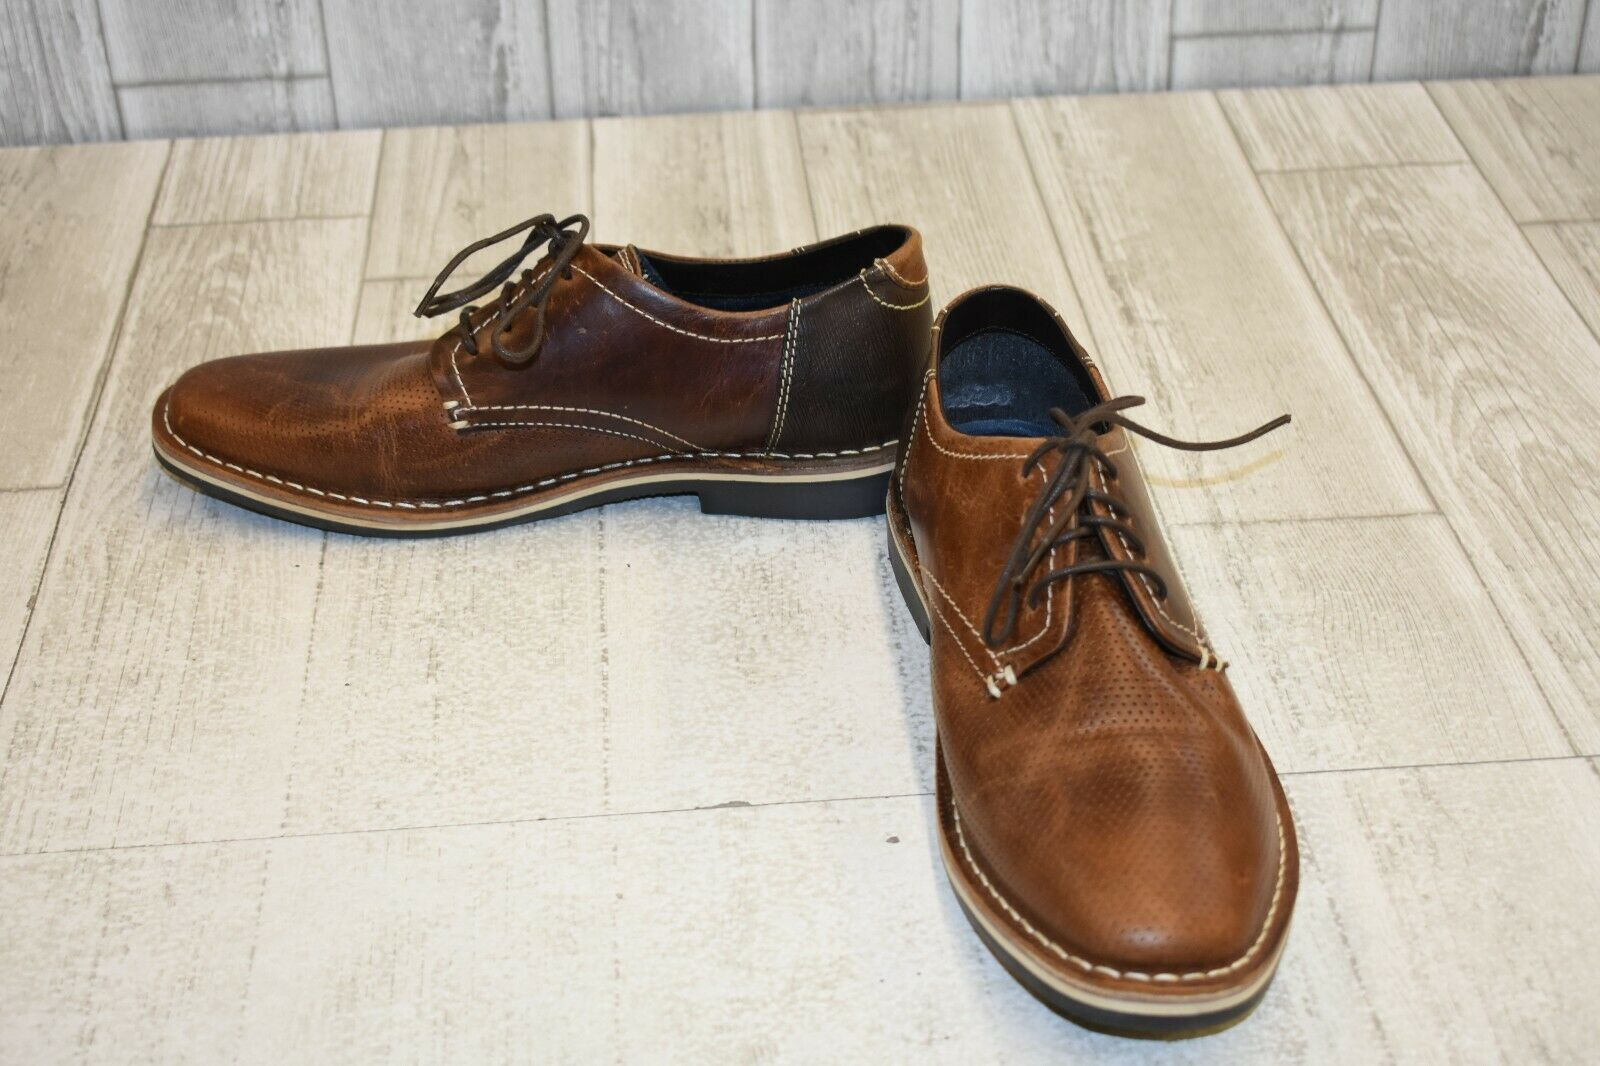 Steve Madden Heywire Perforated Oxford - Men's Size 9, Brown